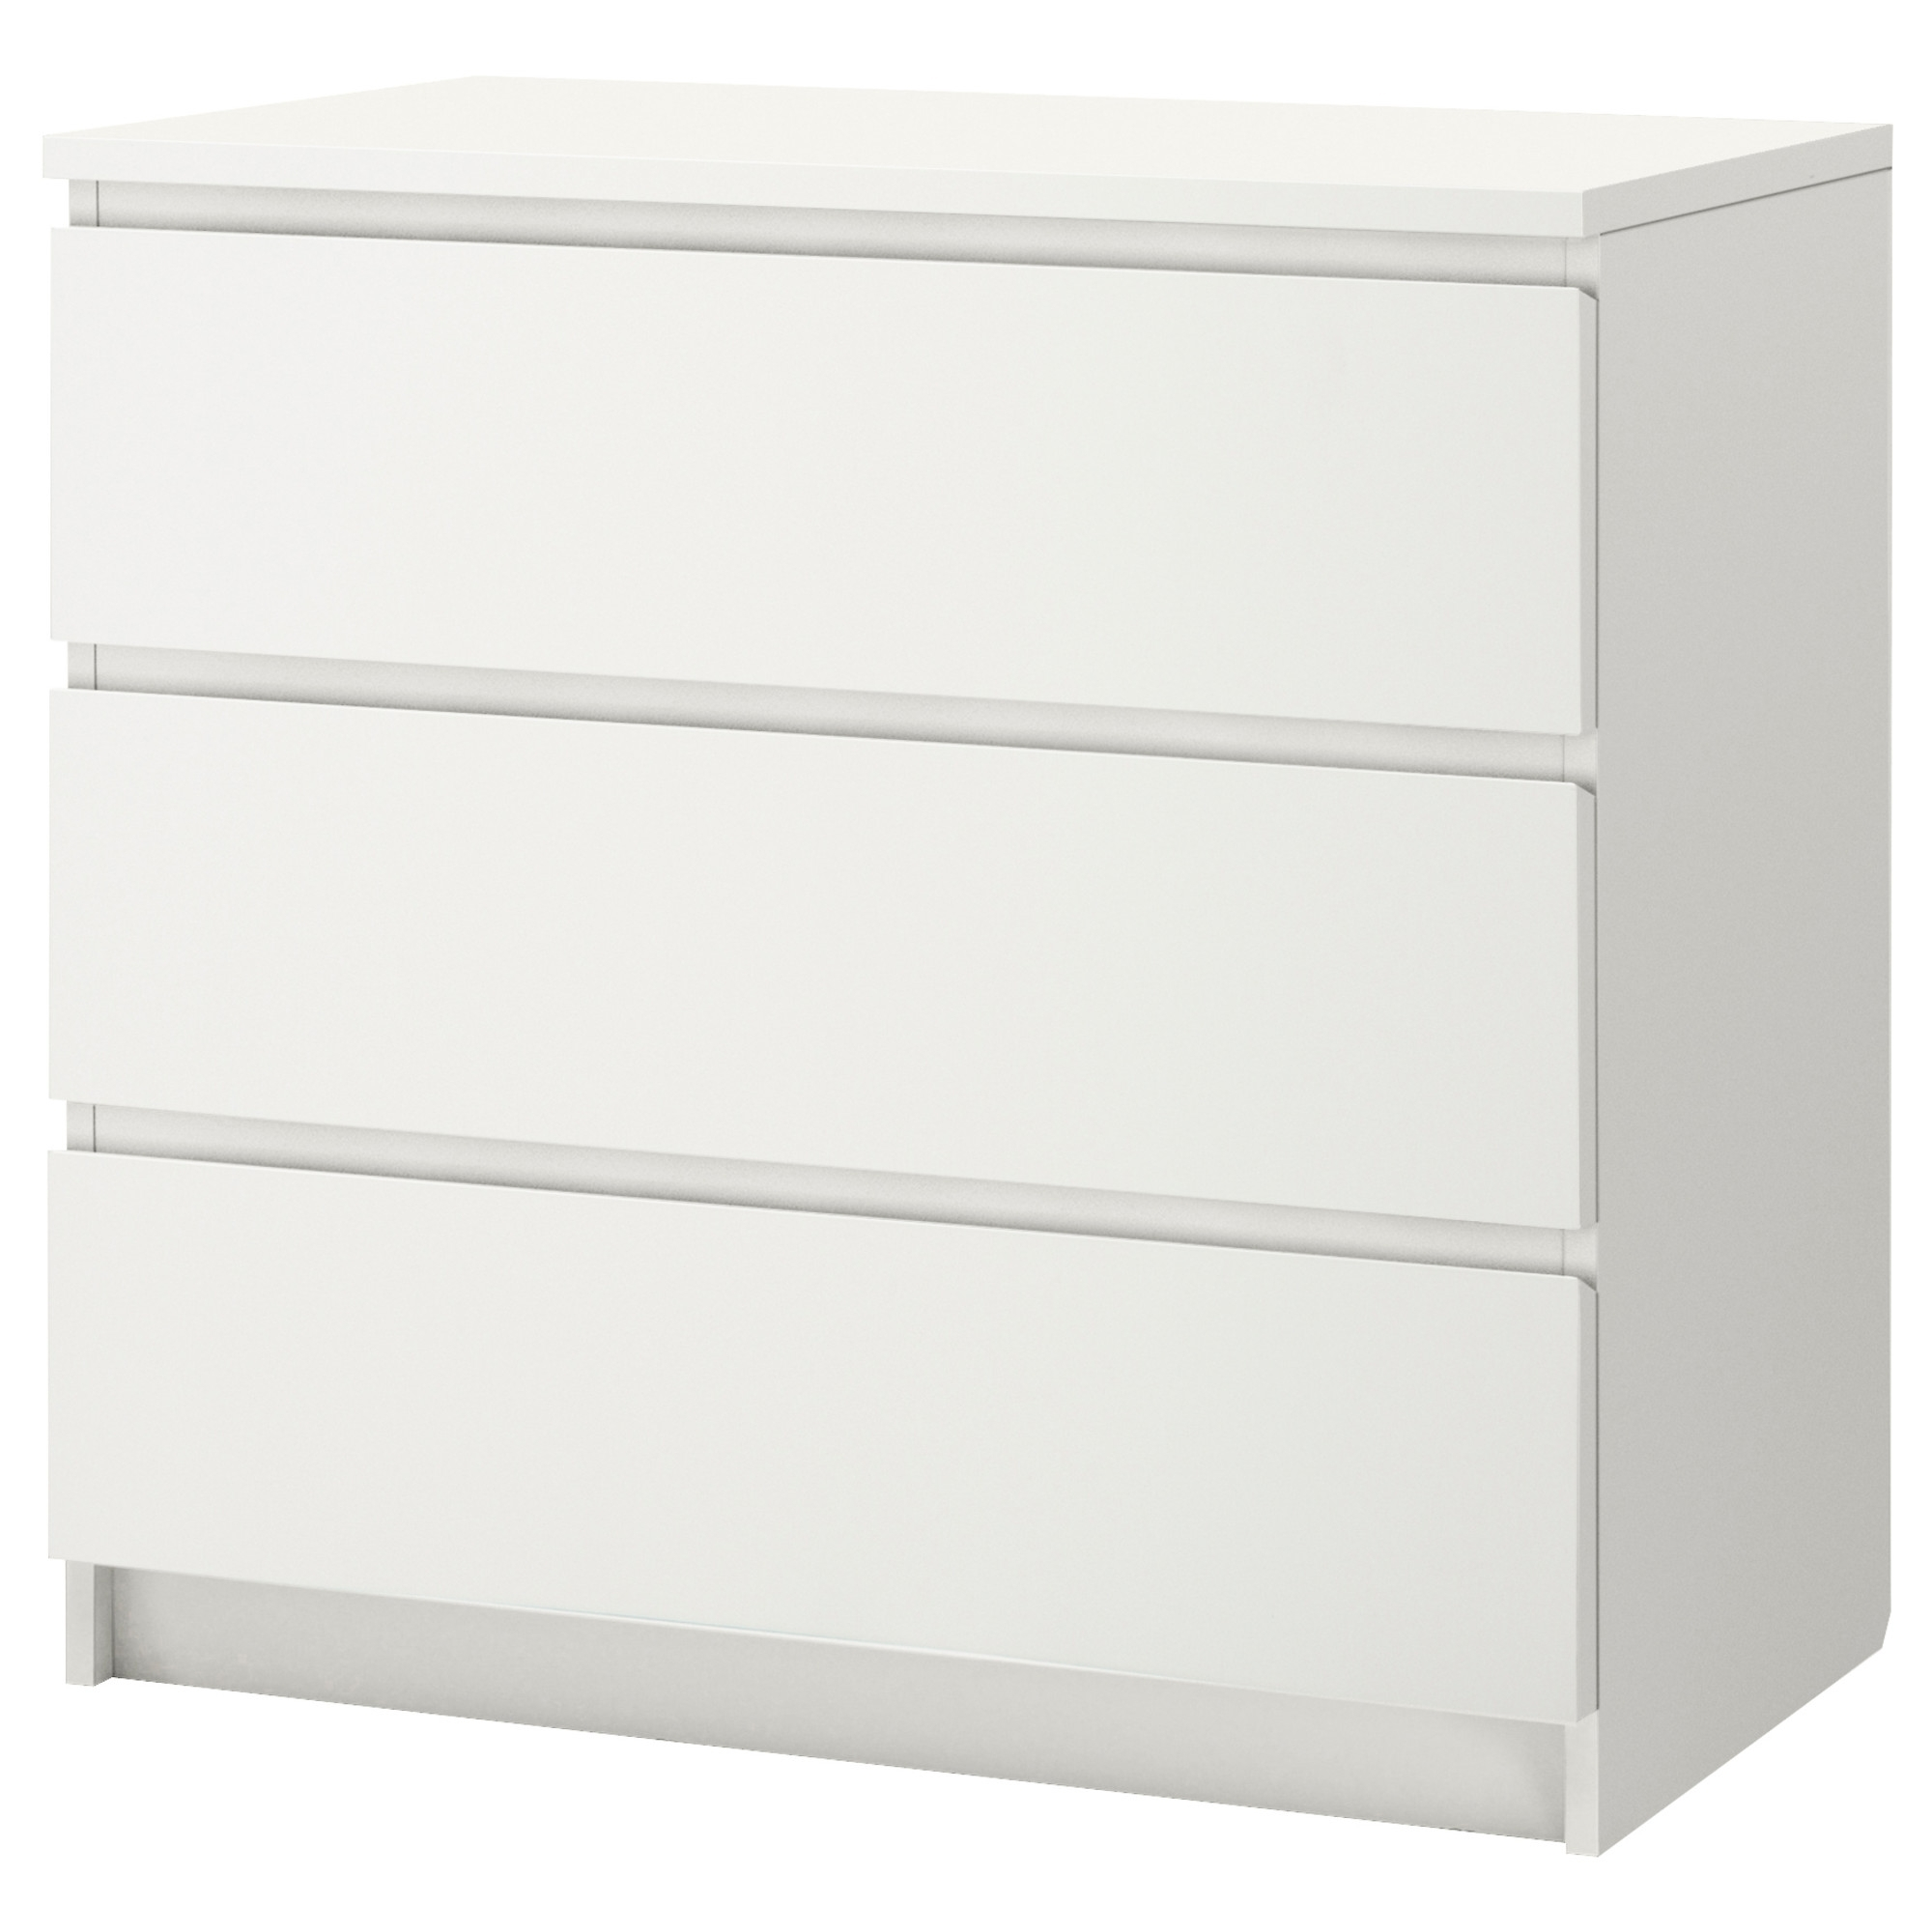 Ikea Lithuania - Shop For Furniture, Lighting, Home Accessories & More within Koip 6 Door Sideboards (Image 20 of 30)